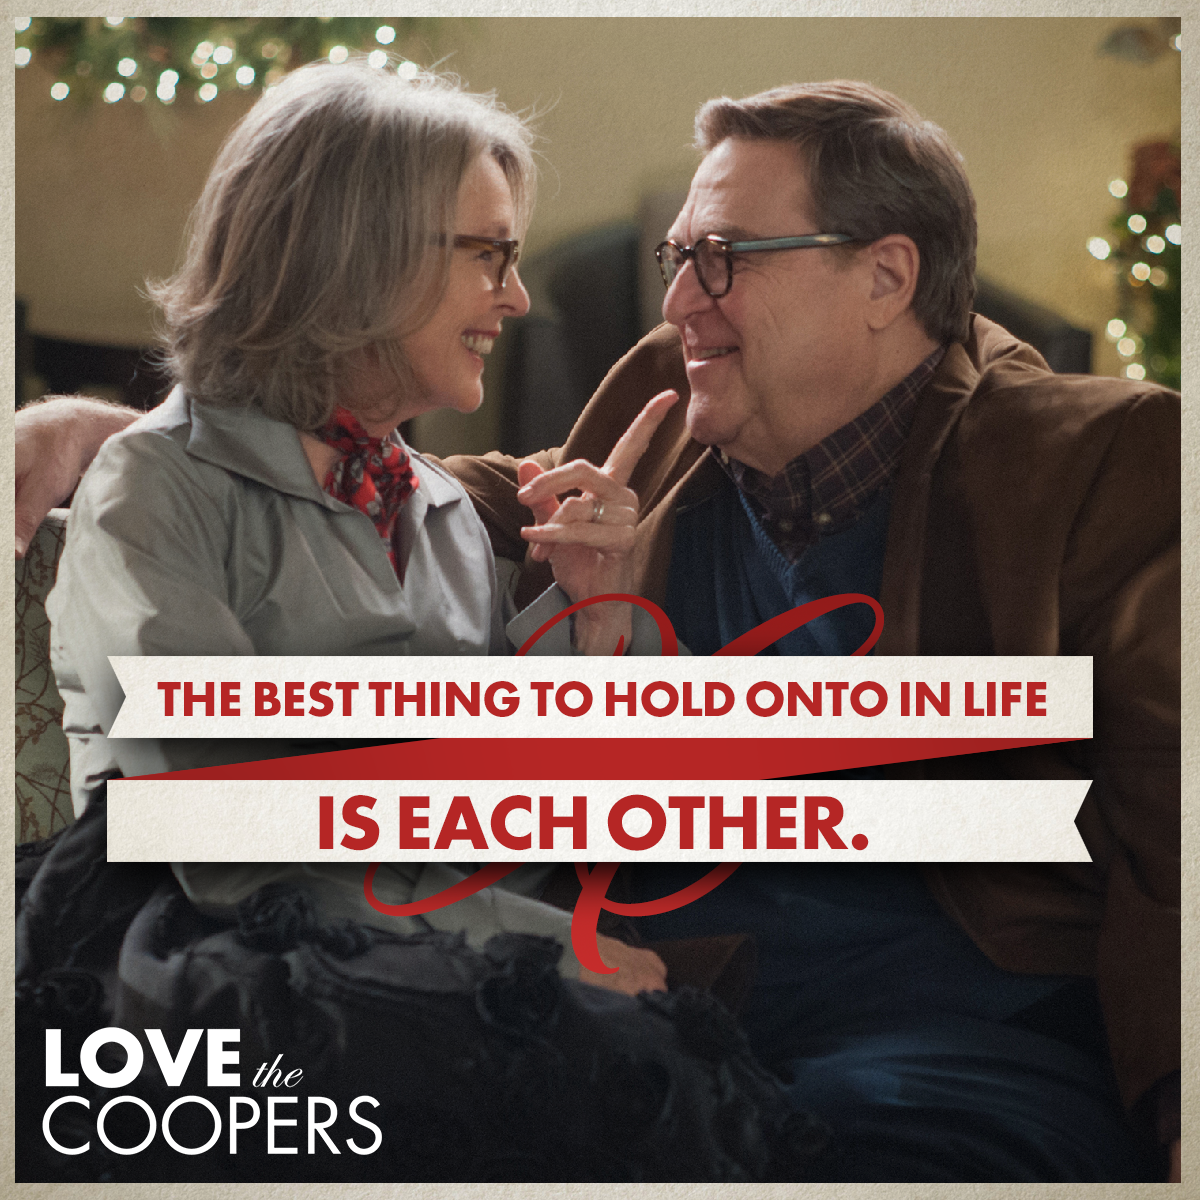 Stick together with your other half! #LoveTheCoopers https://t.co/Ikh0cht92x